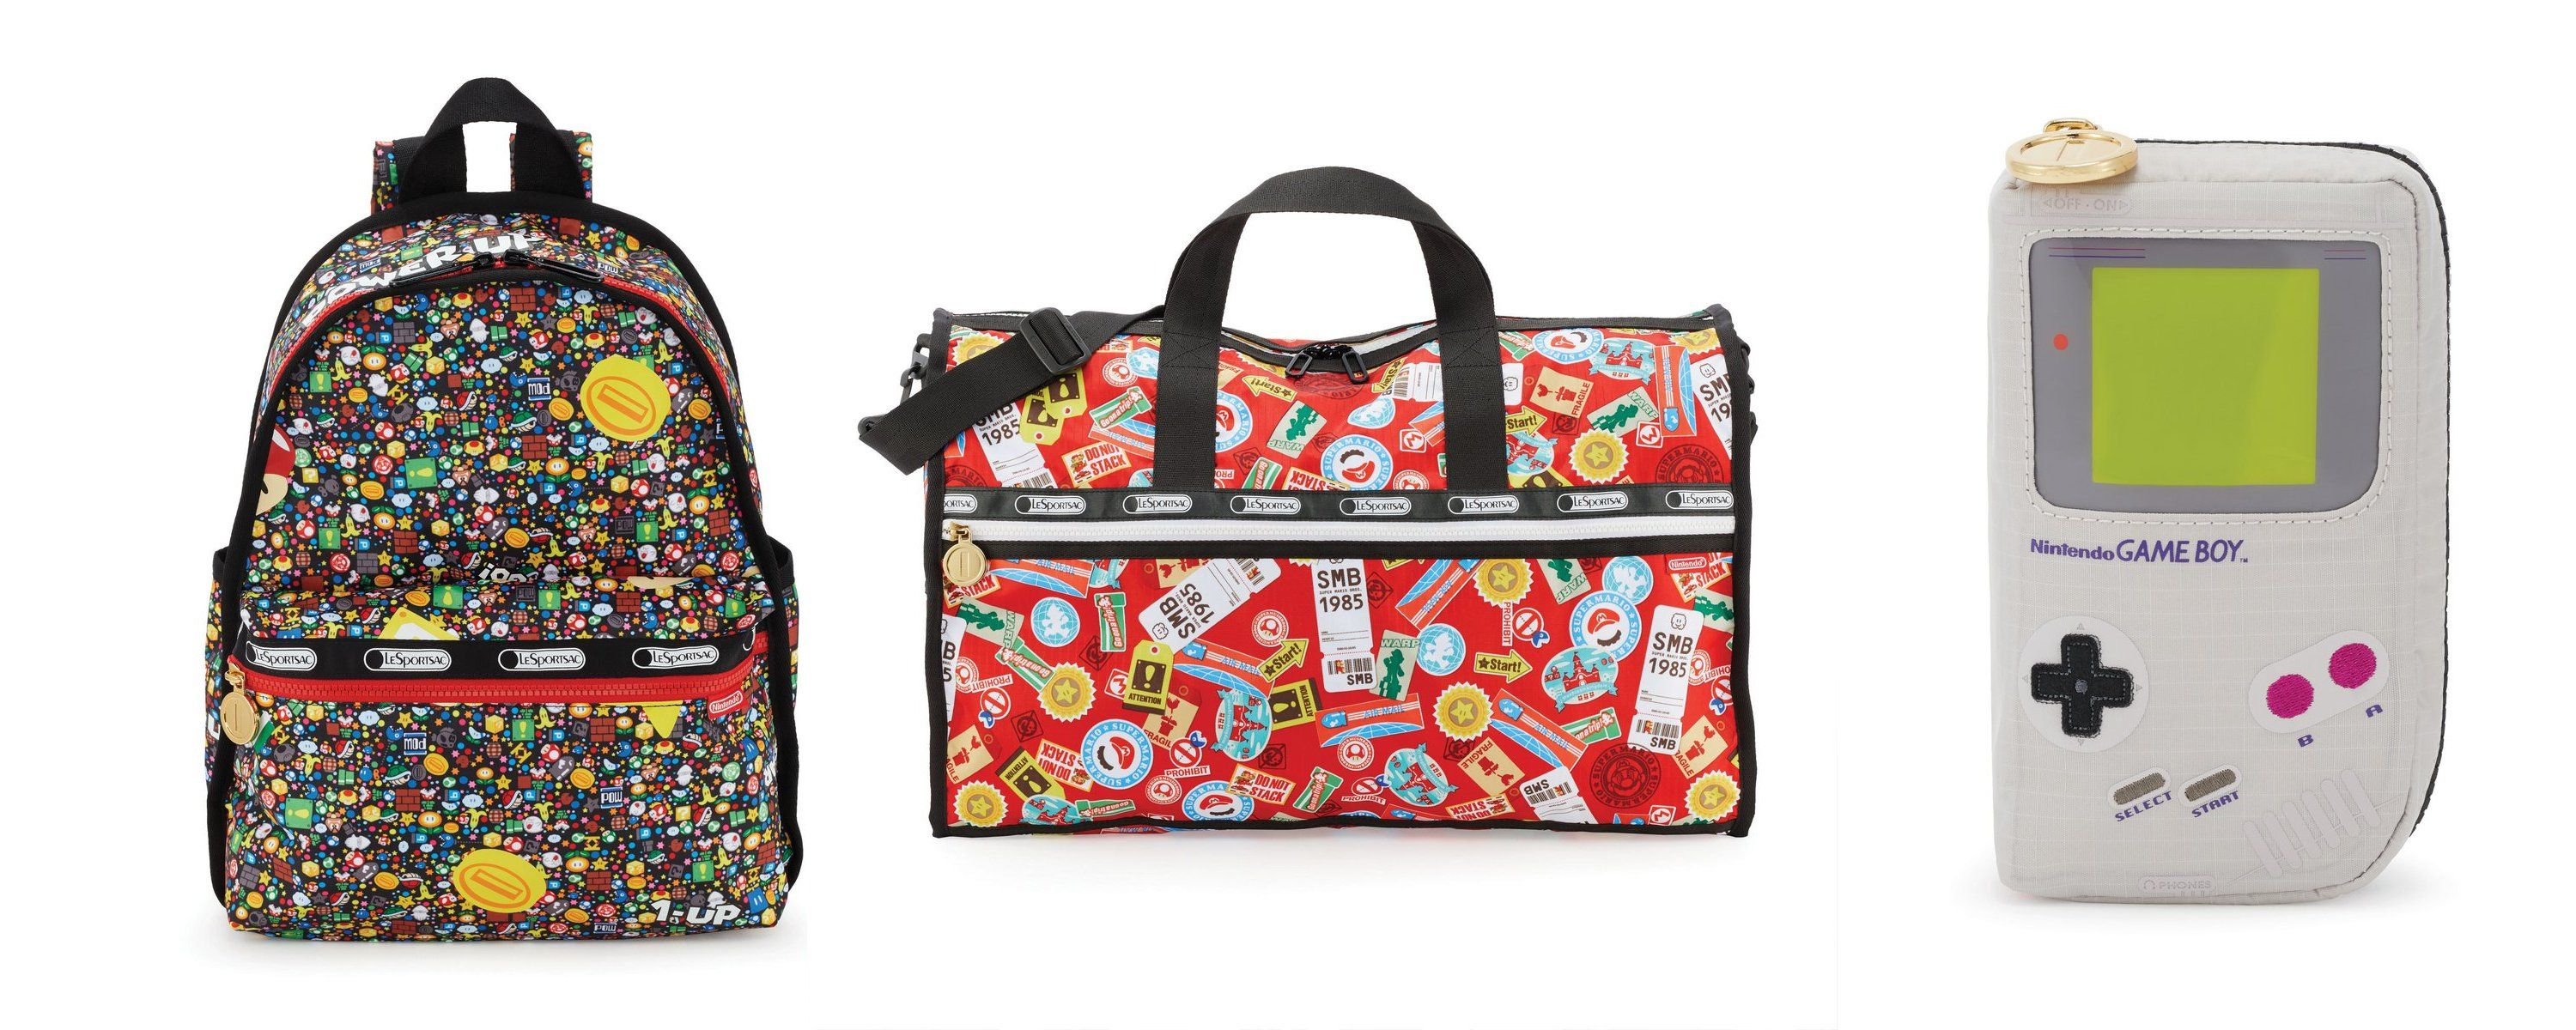 0a85a8b399 Here are some loud Nintendo bags from LeSportsac: Nintendo is doing a line  of GAMER BAGS with LeSportsac, which is actually an American…